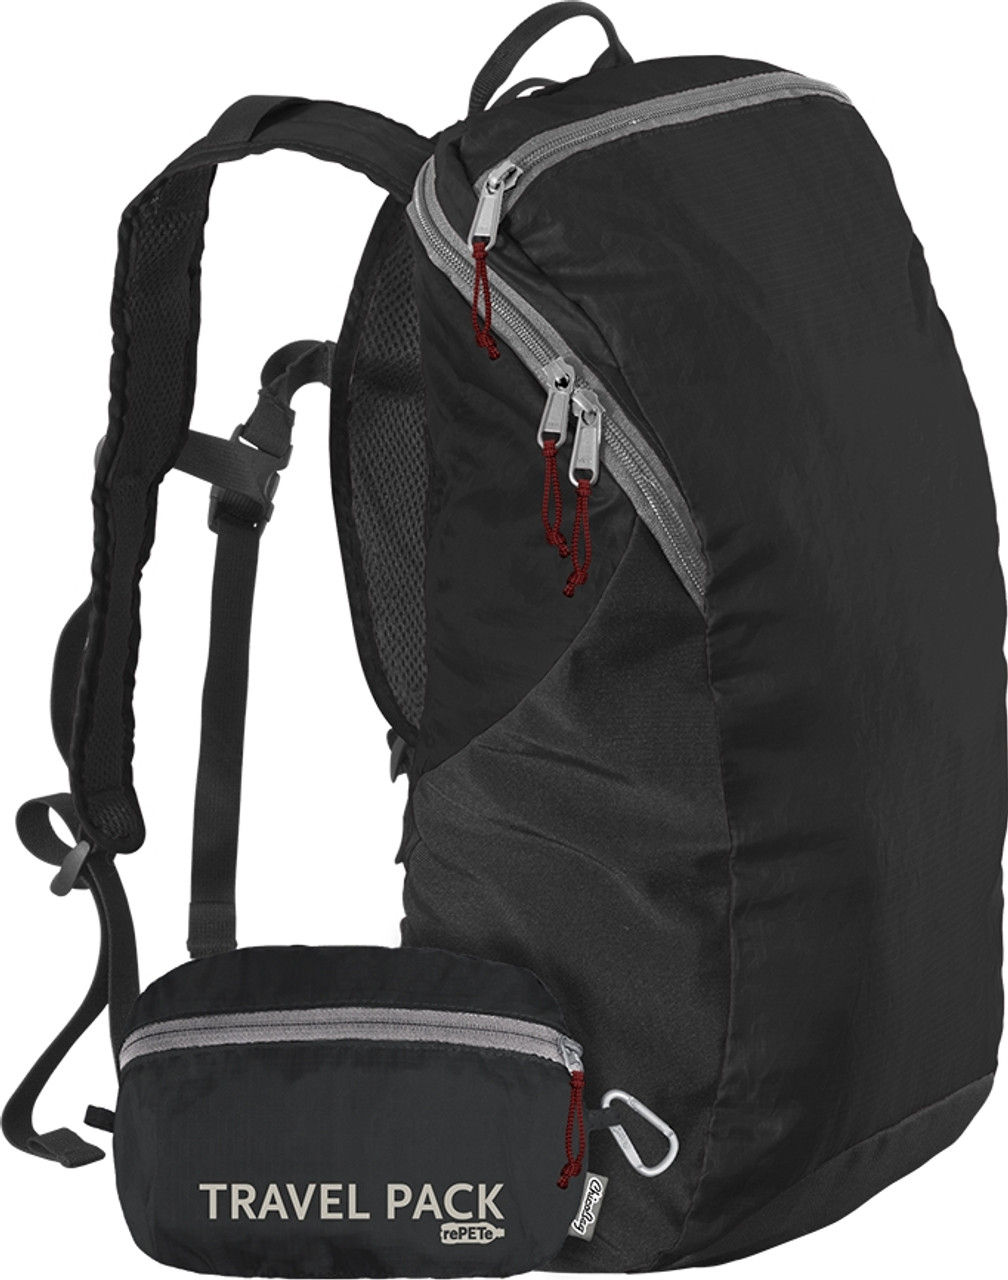 ChicoBag Travel Pack rePETe Pouchable Backpack